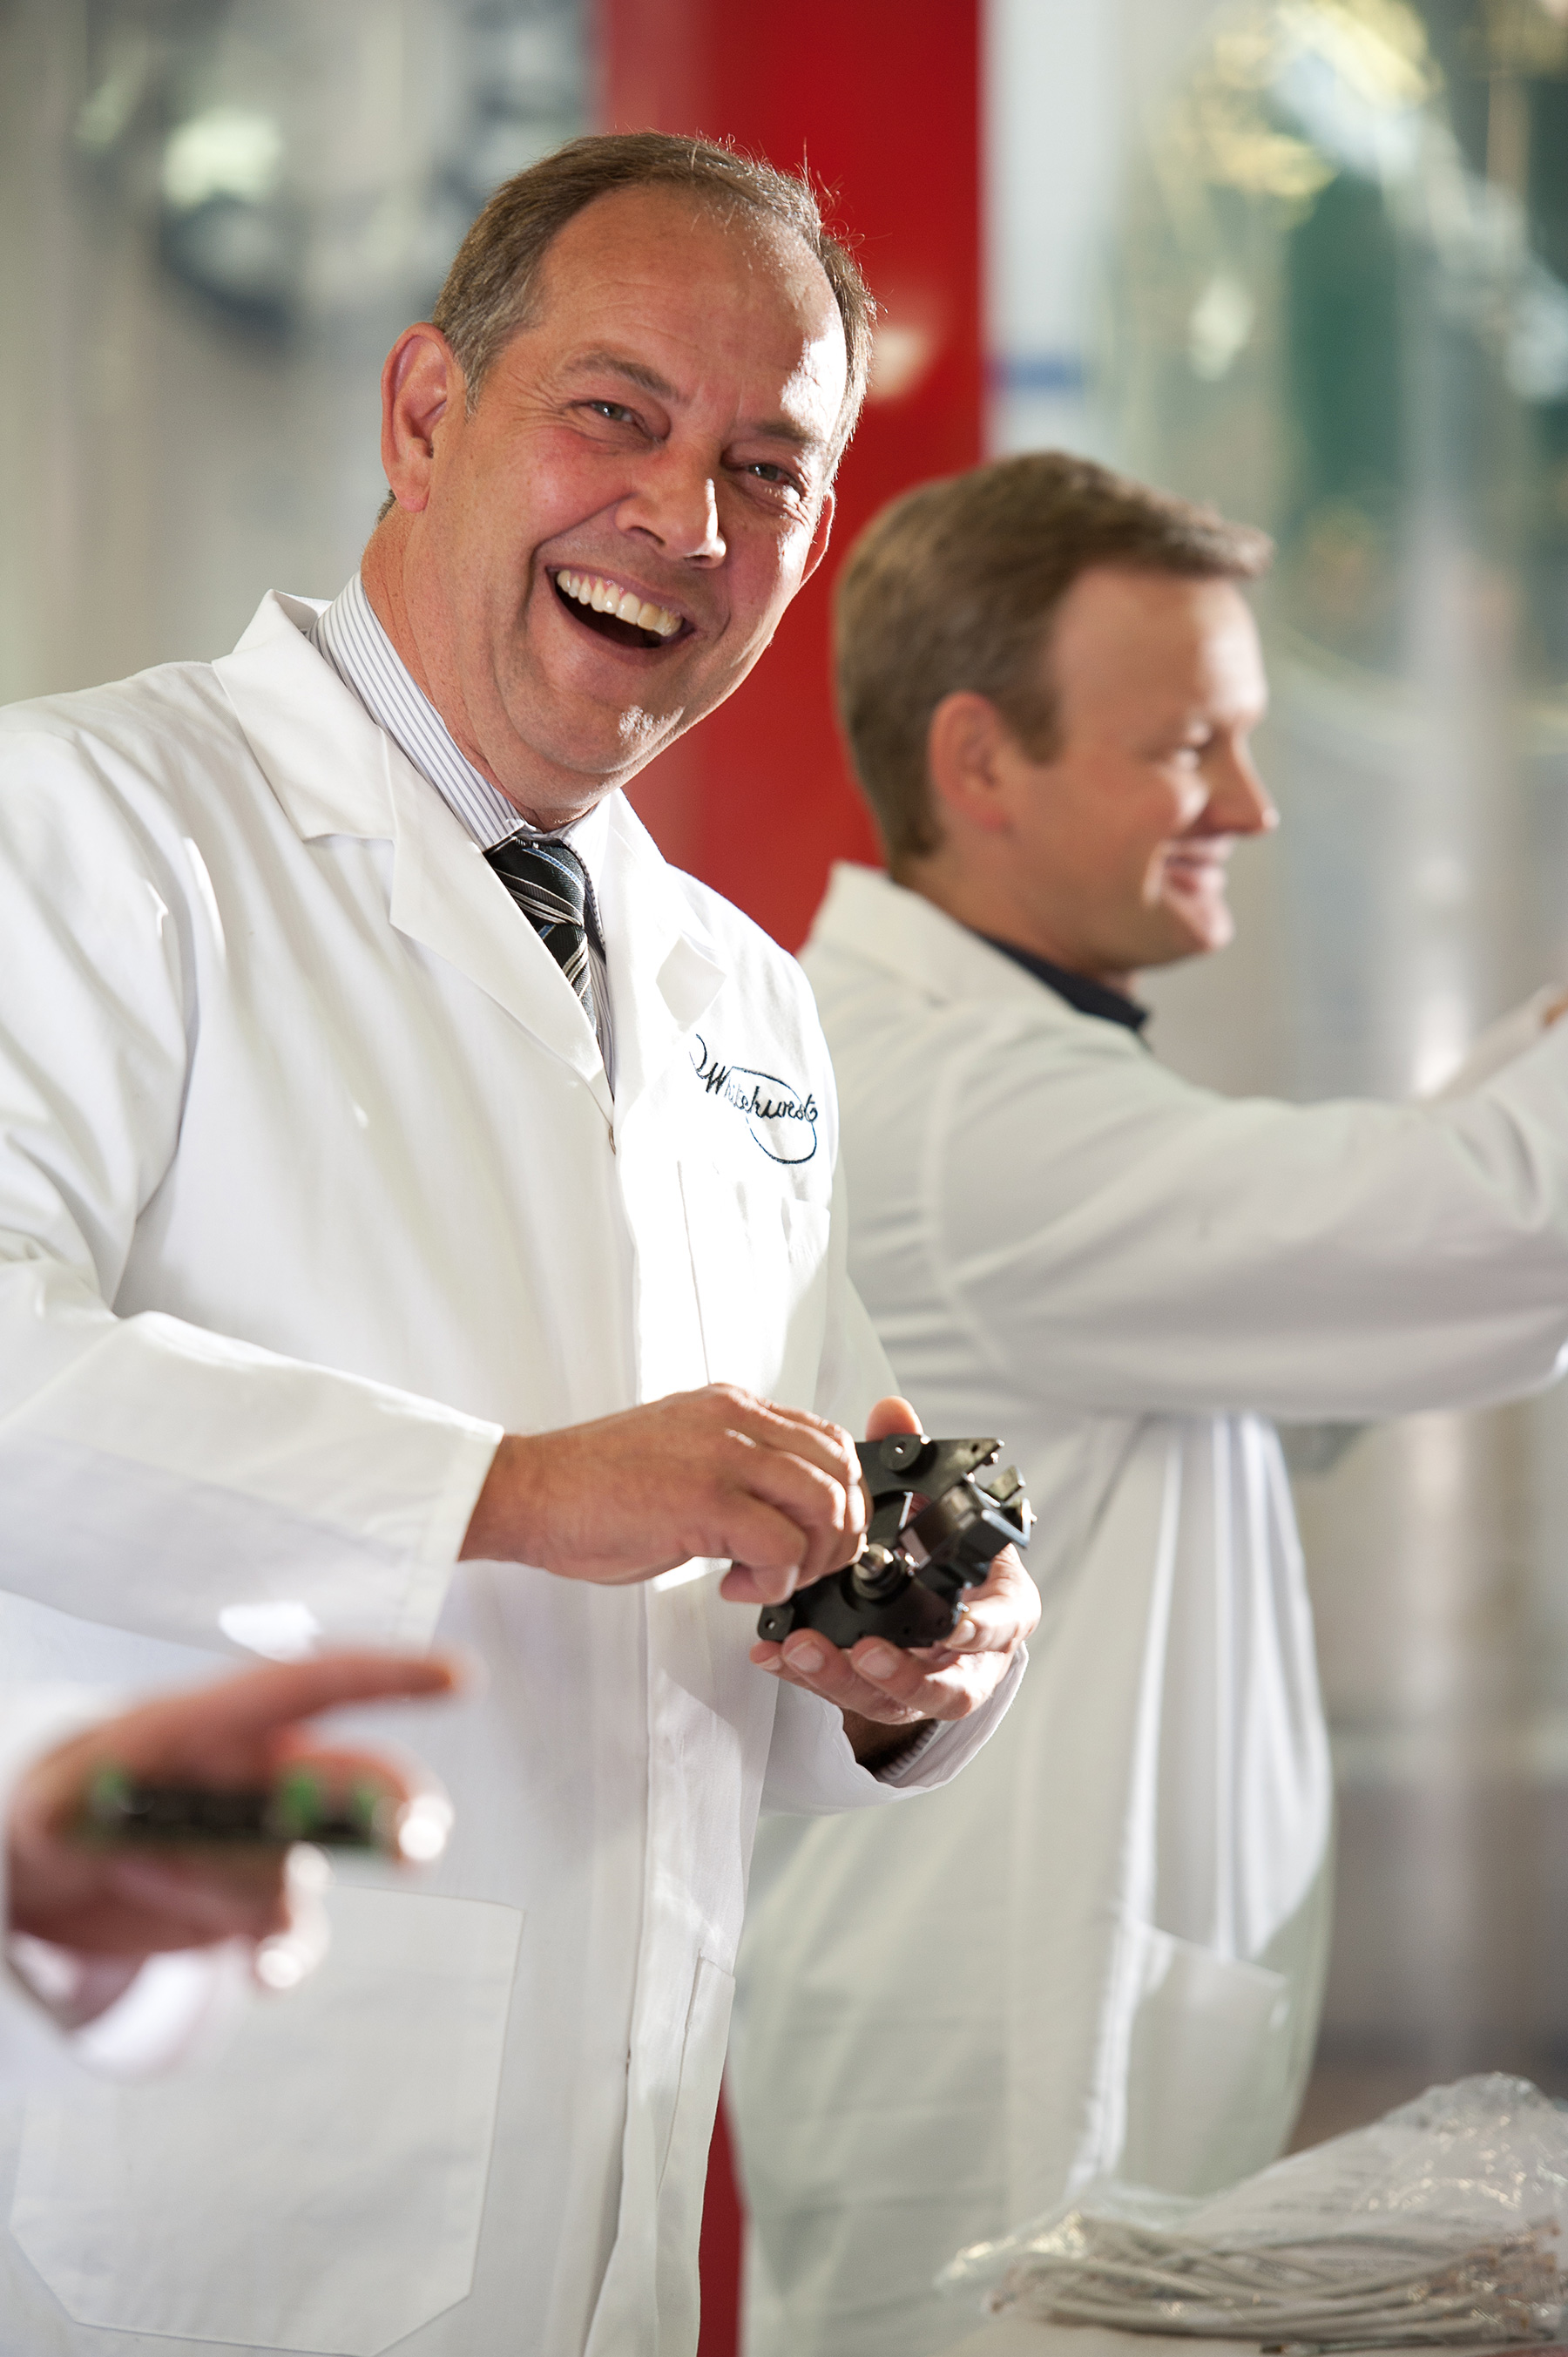 Man is smiling wearing white laboratory jacket whilst working